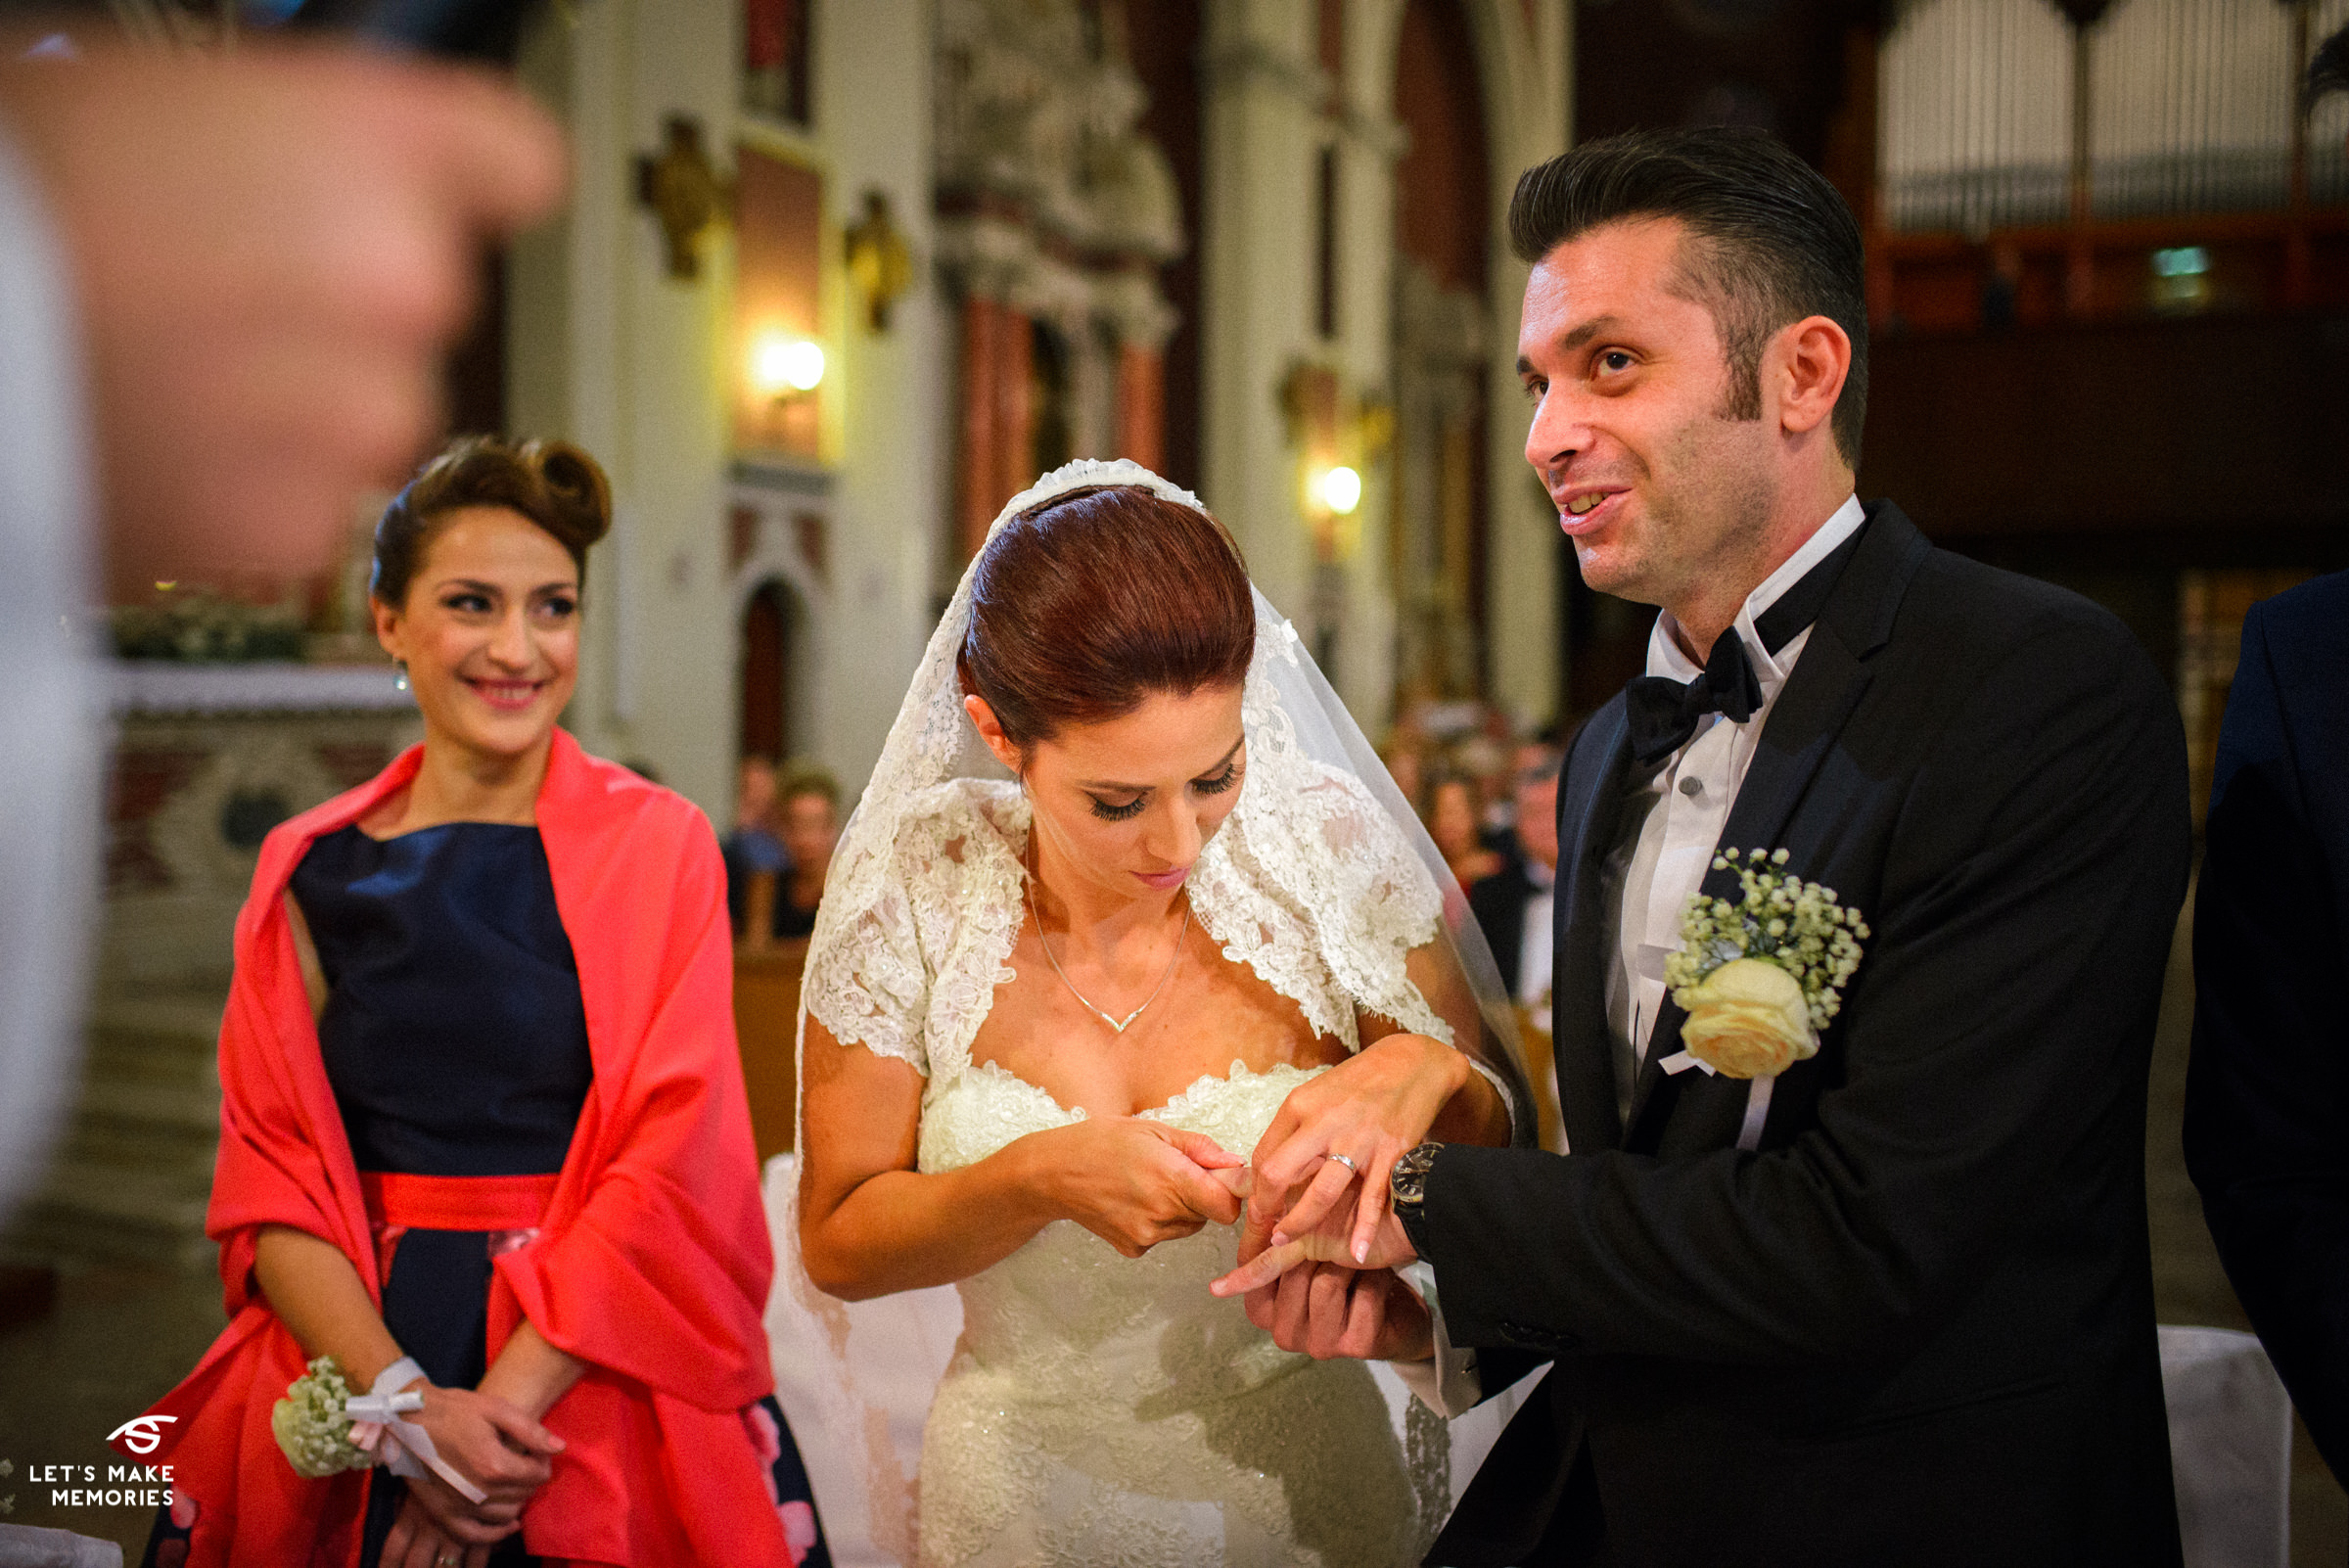 bride struggling to put on the wedding ring on grooms finger